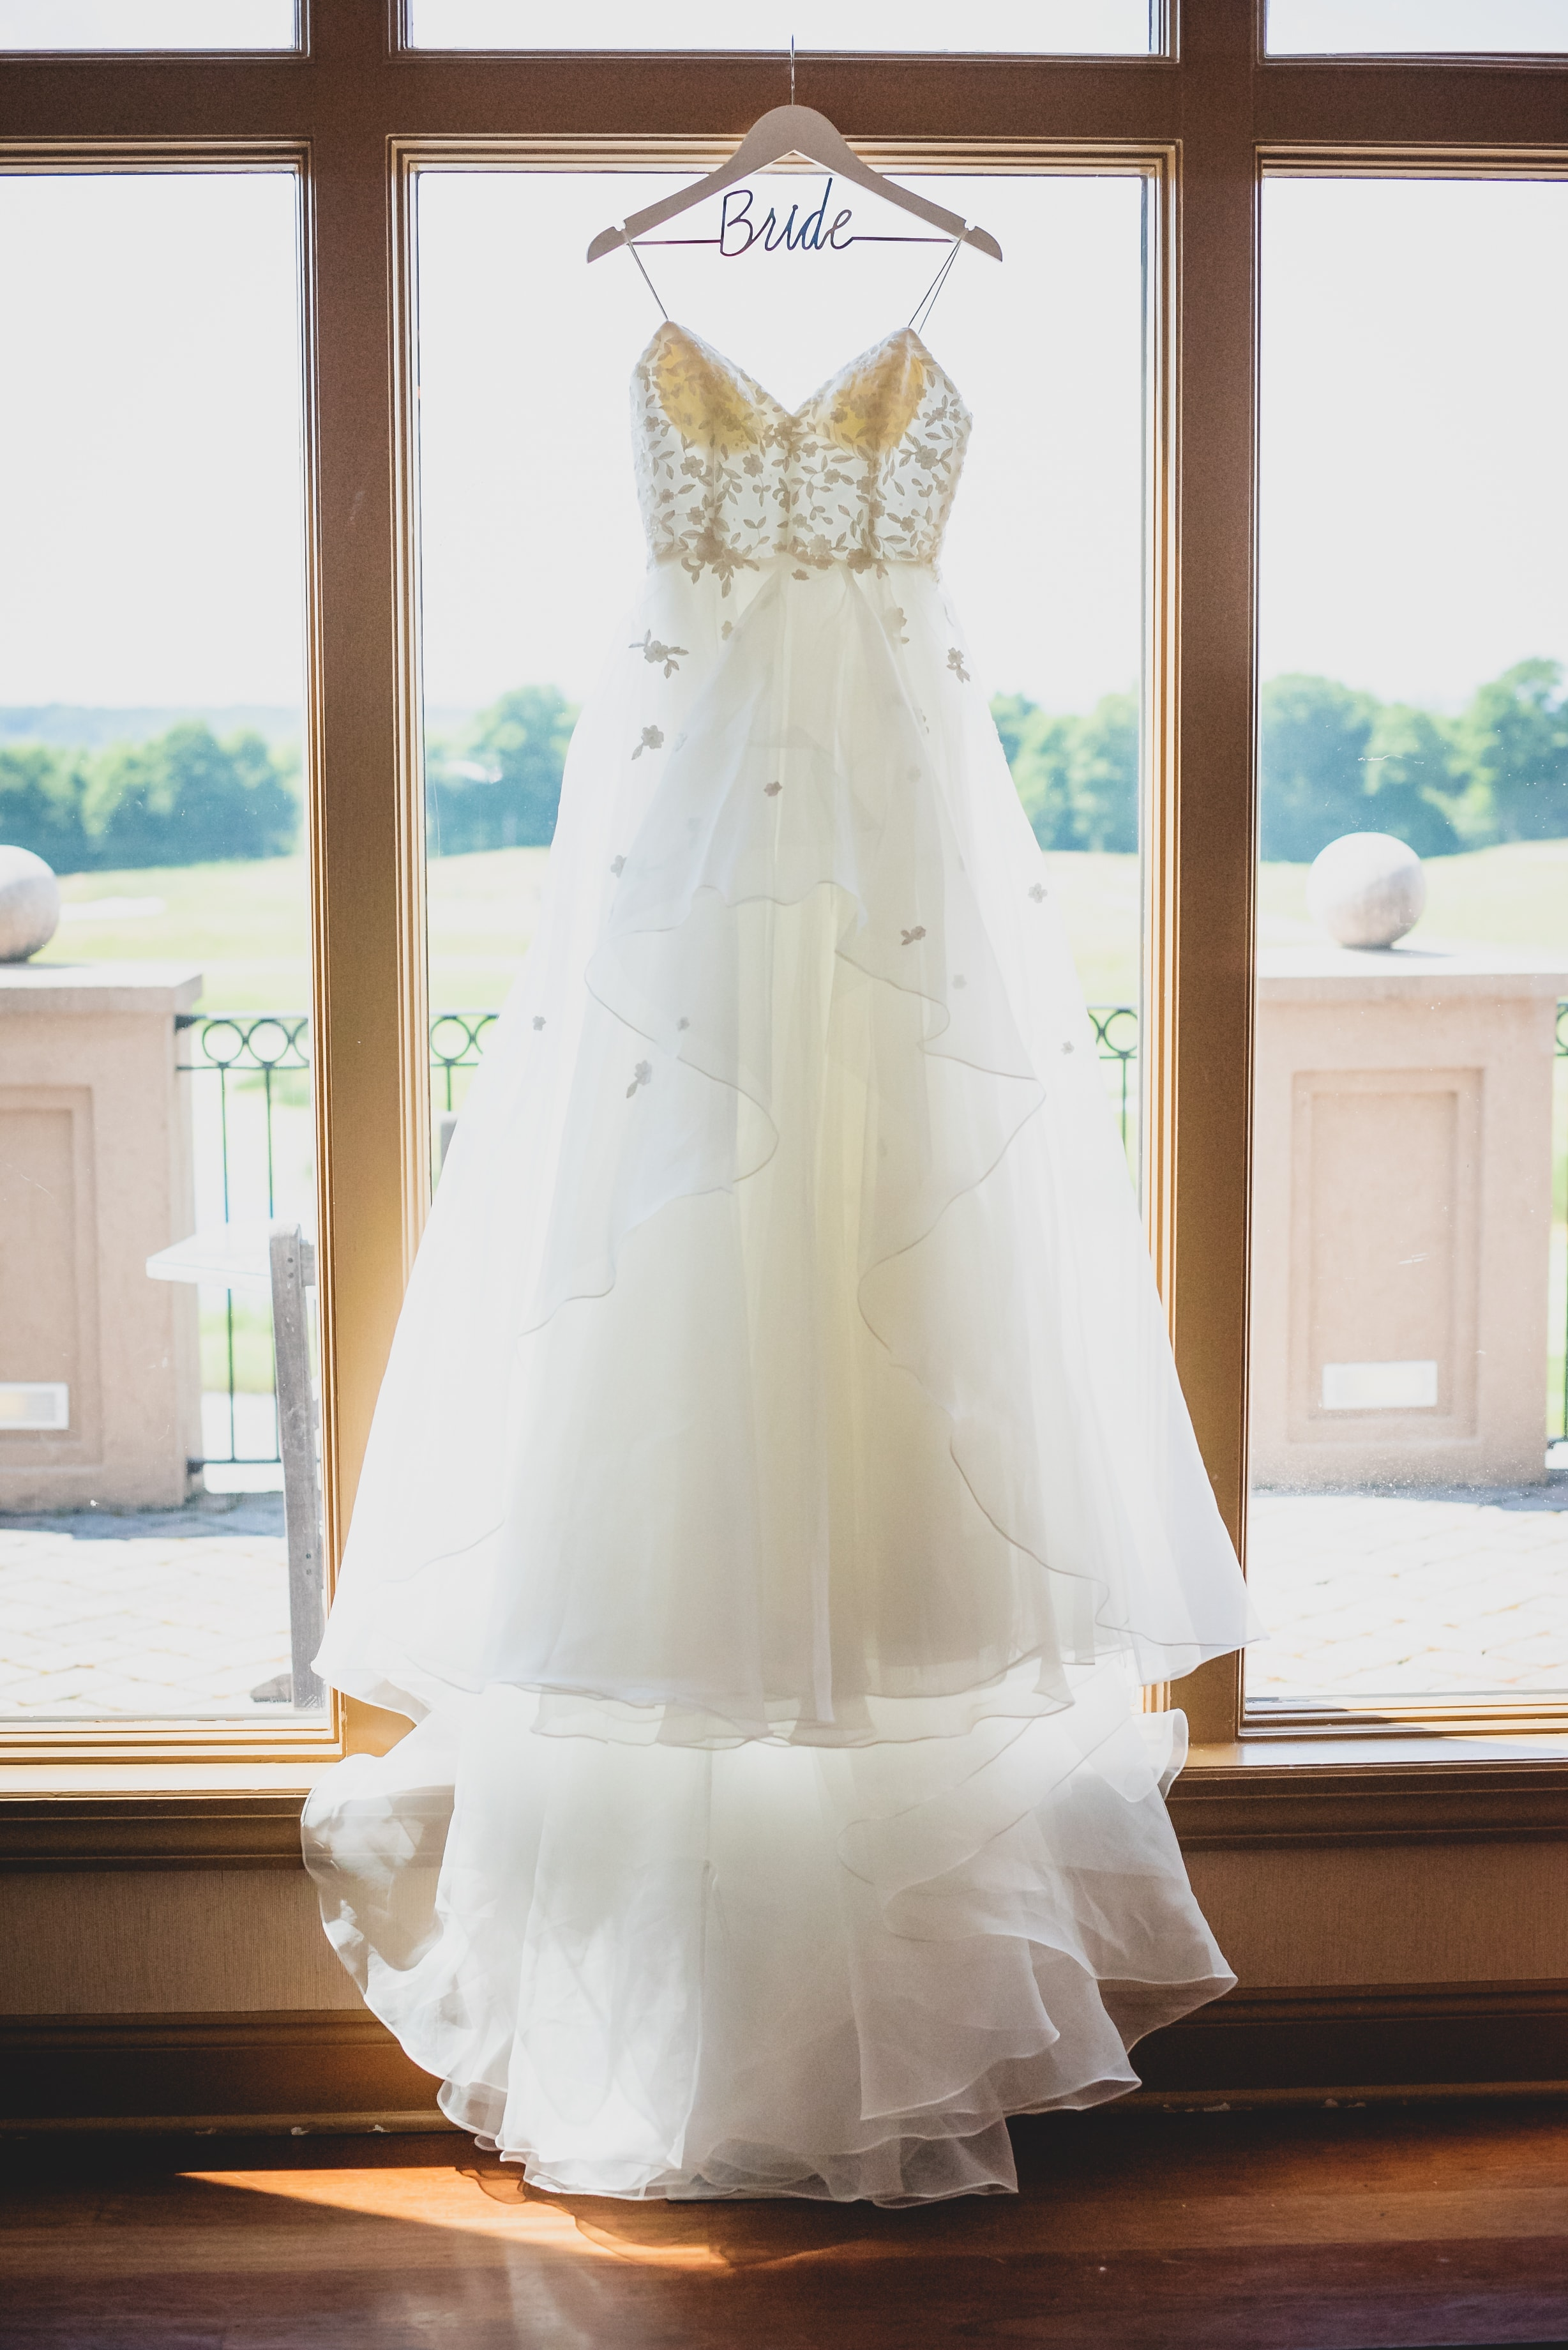 White flowing wedding dress hanging from a window sill in a wooden room.